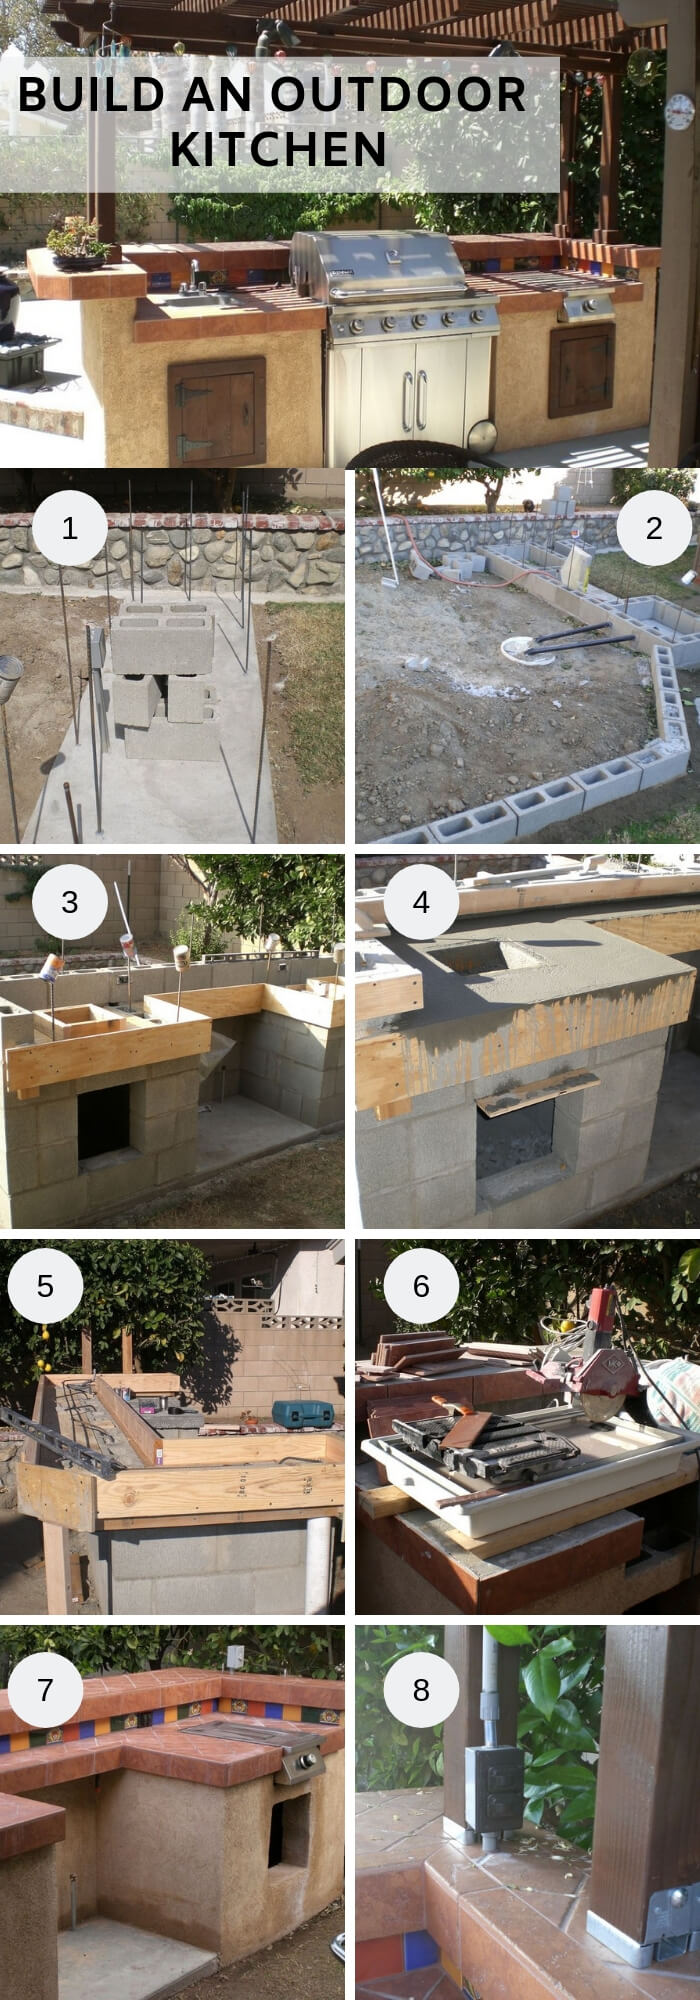 How to build an outdoor kitchen | DIY Outdoor Kitchen Ideas (Cheap, Simple, Modern, and Country)